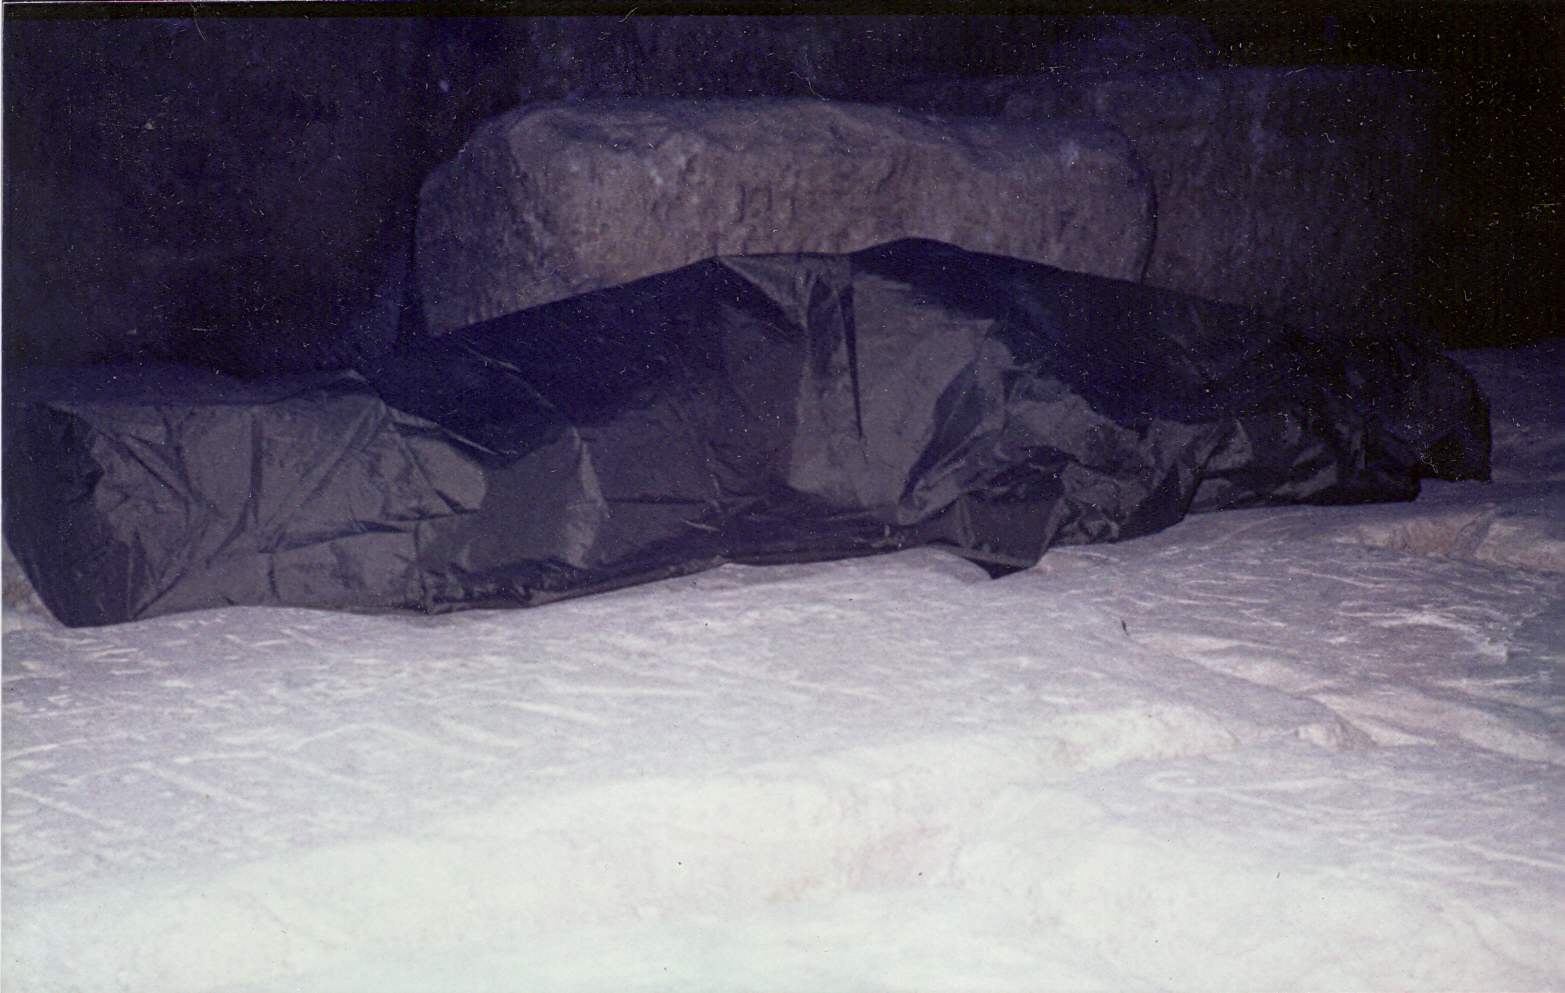 Top of the Great Pyramid of Cheops near midnight, Jan.11, 1985  (click for larger image)